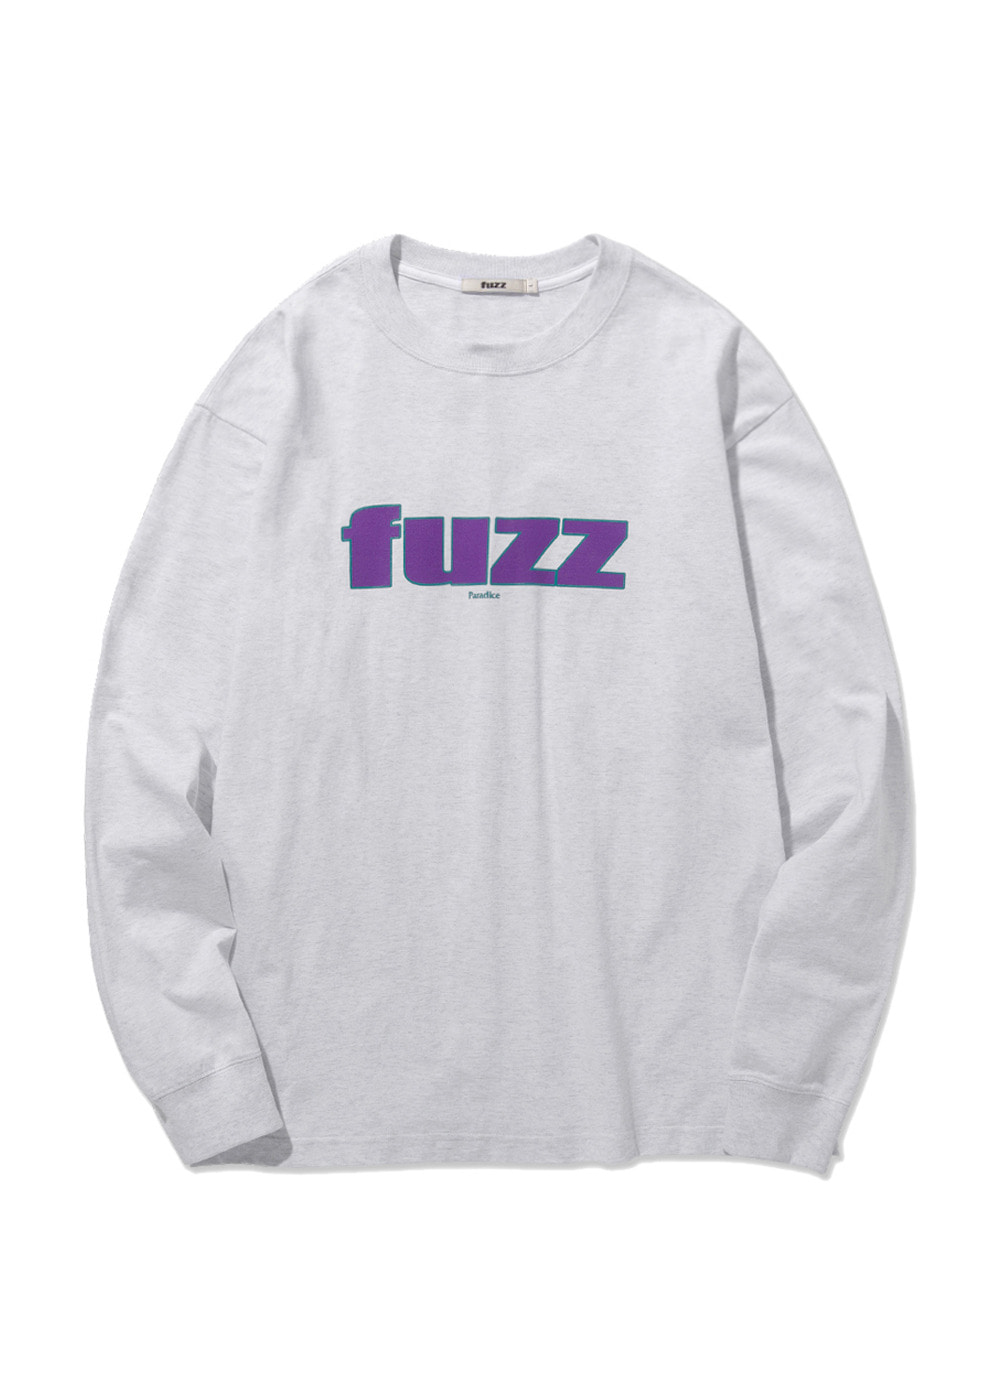 FUZZ FRONT LOGO L/S TEE lt. heather gray